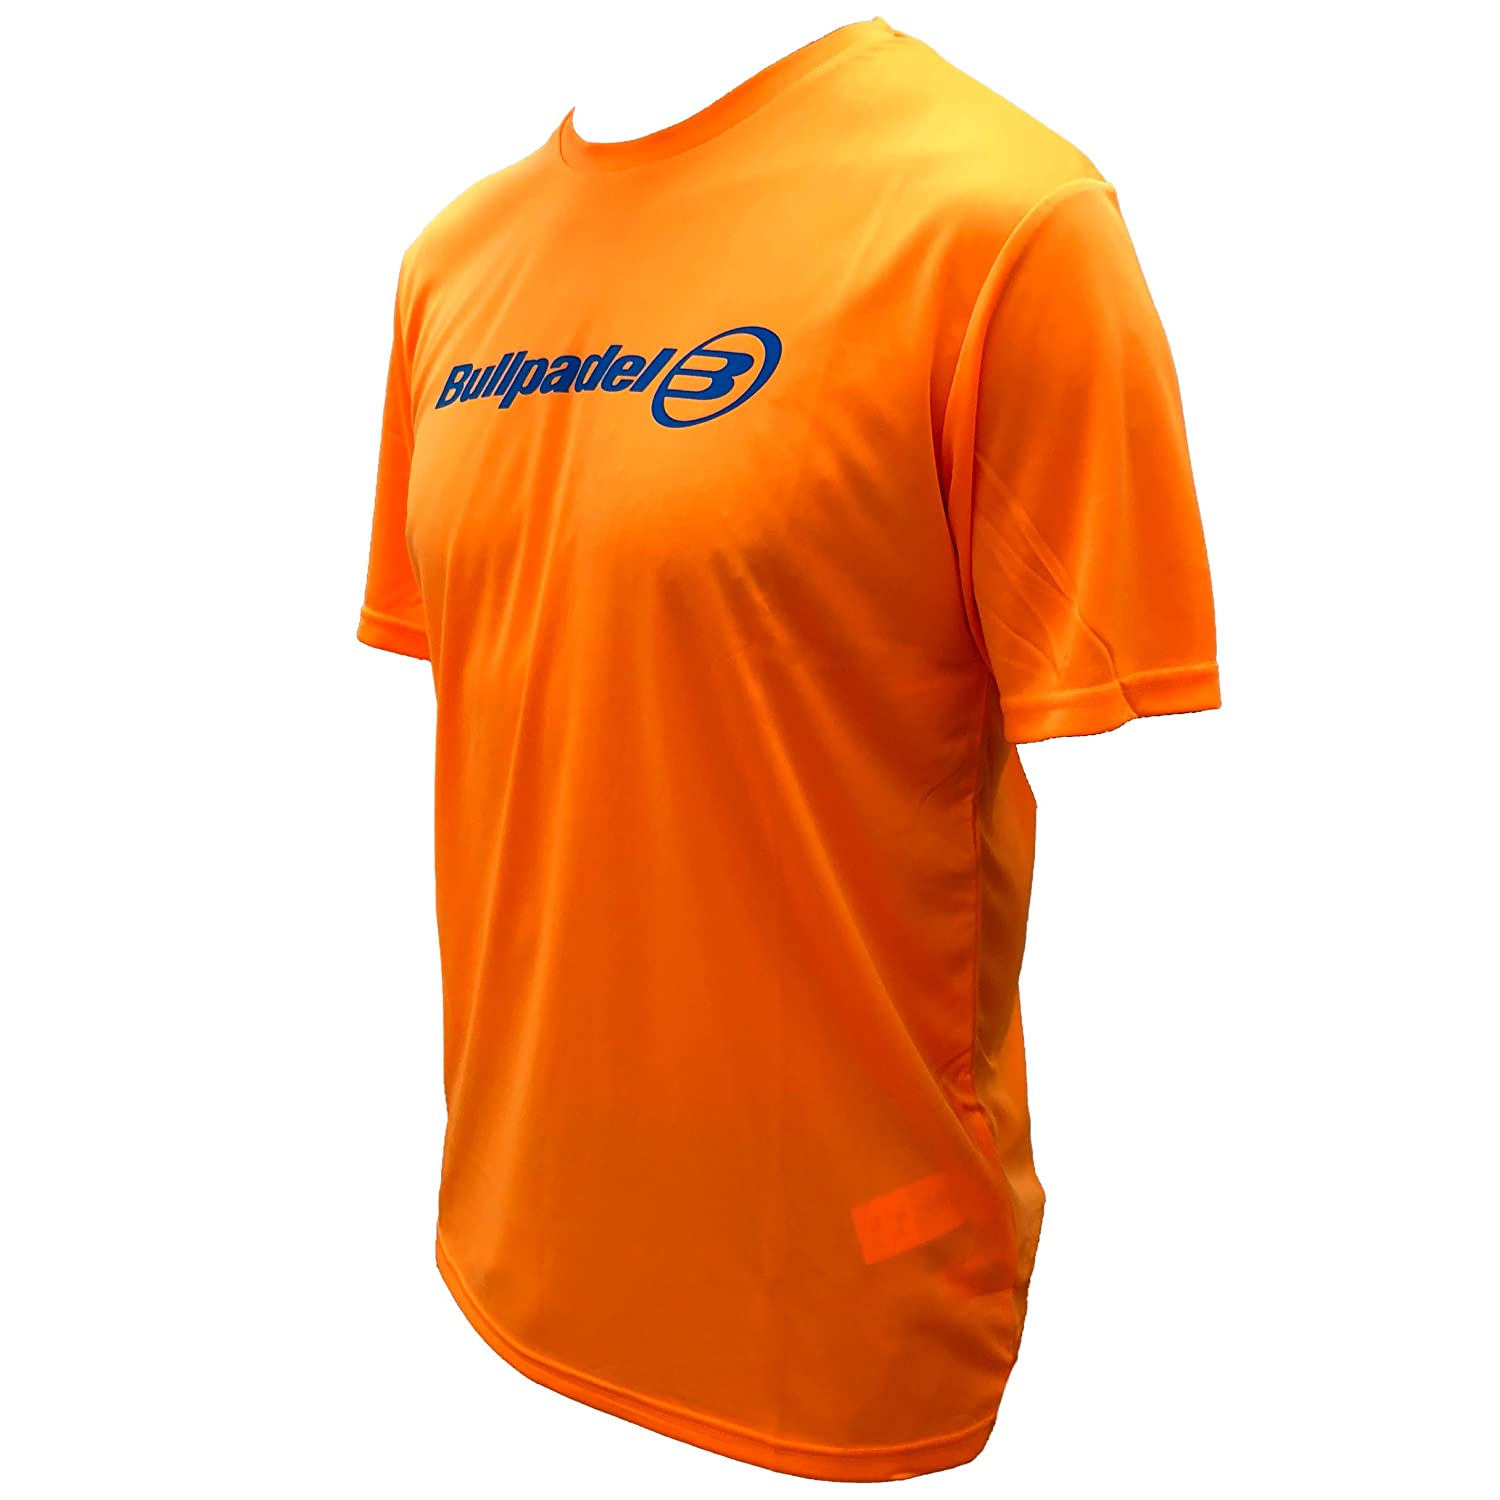 Camiseta Bullpadel Naranja ODP (XL): Amazon.es: Deportes y ...